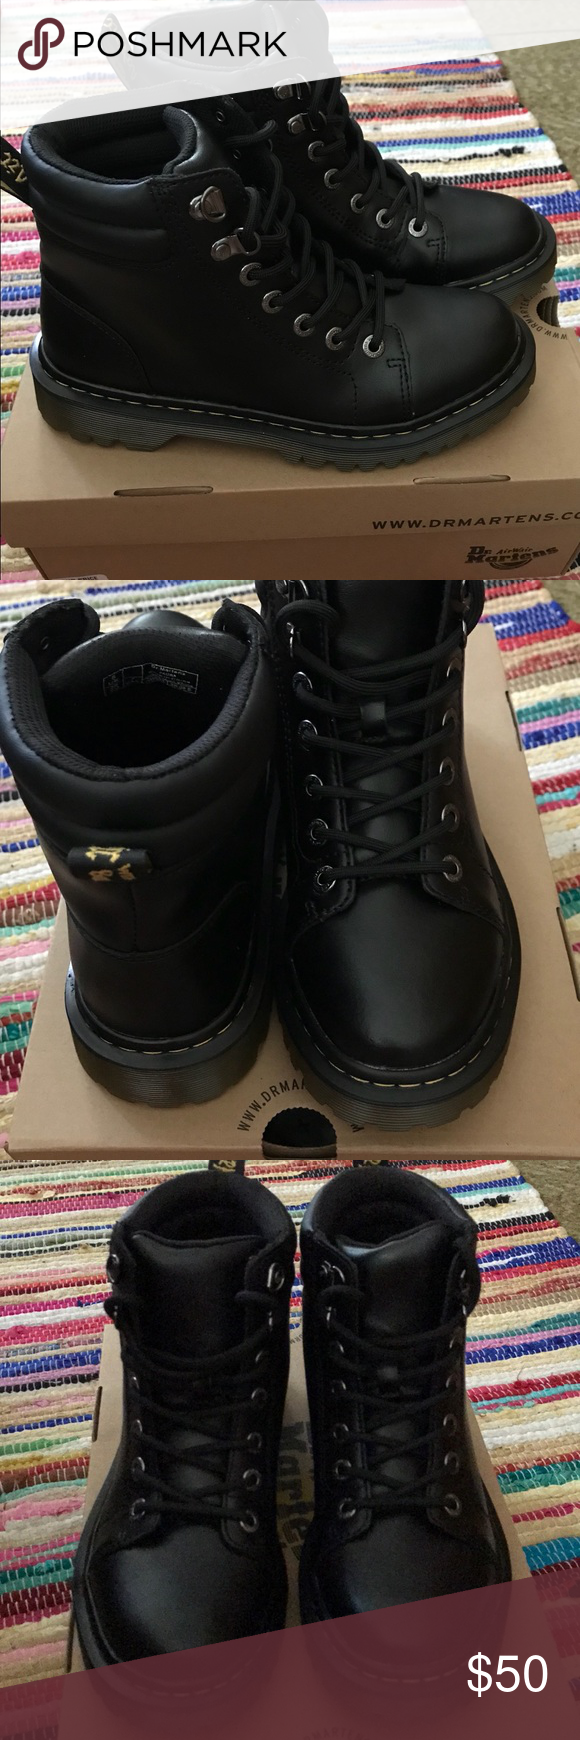 c546a54f300d New Dr Martens Faora Boot Size 7 New never worn Dr Martens Faora Boot. Size  7 and have no marks or scratches. Dr. Martens Shoes Combat   Moto Boots